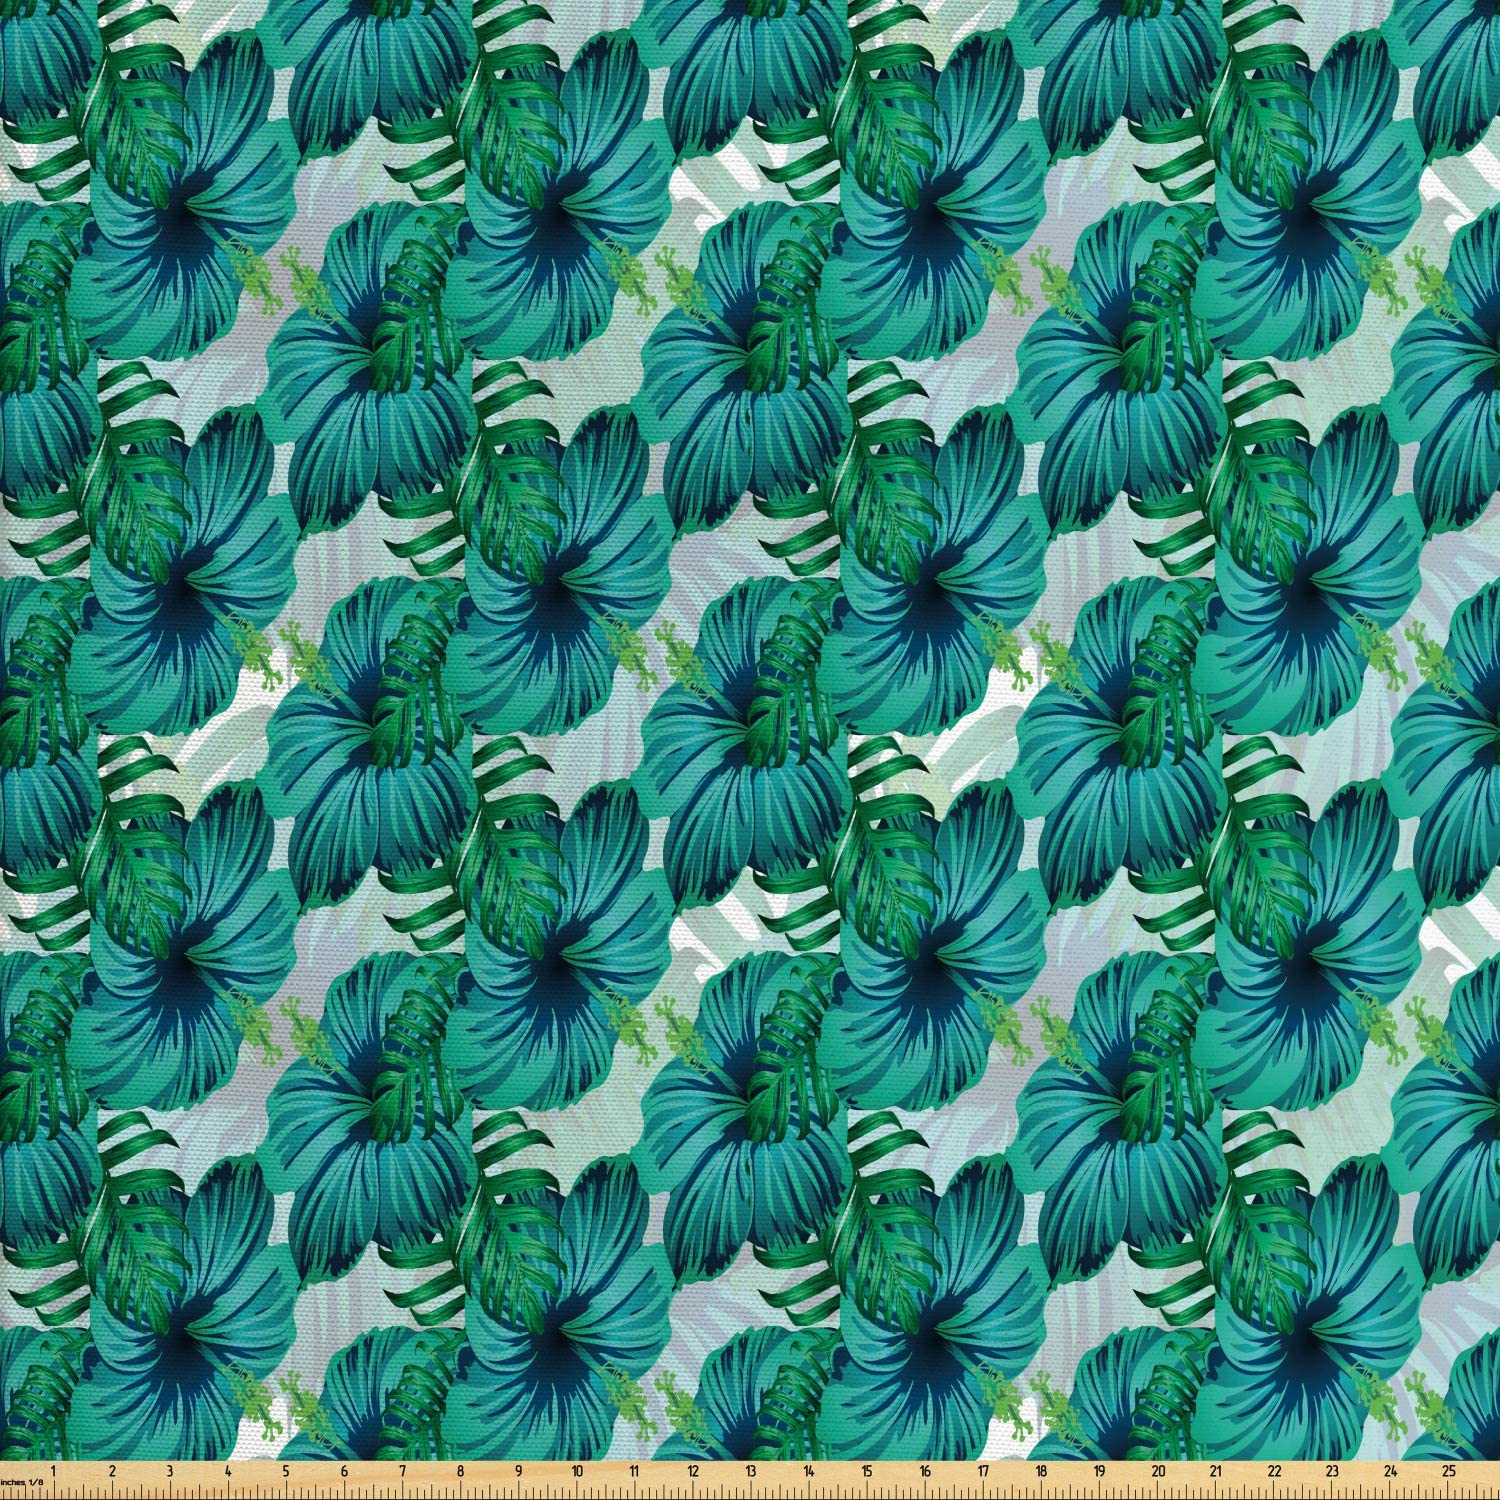 Ambesonne Exotic Fabric by The Yard, Aloha Summer Hibiscus and Tropic Leaves, Decorative Fabric for Upholstery and Home Accents, 1 Yard, Teal Dark Seafoam